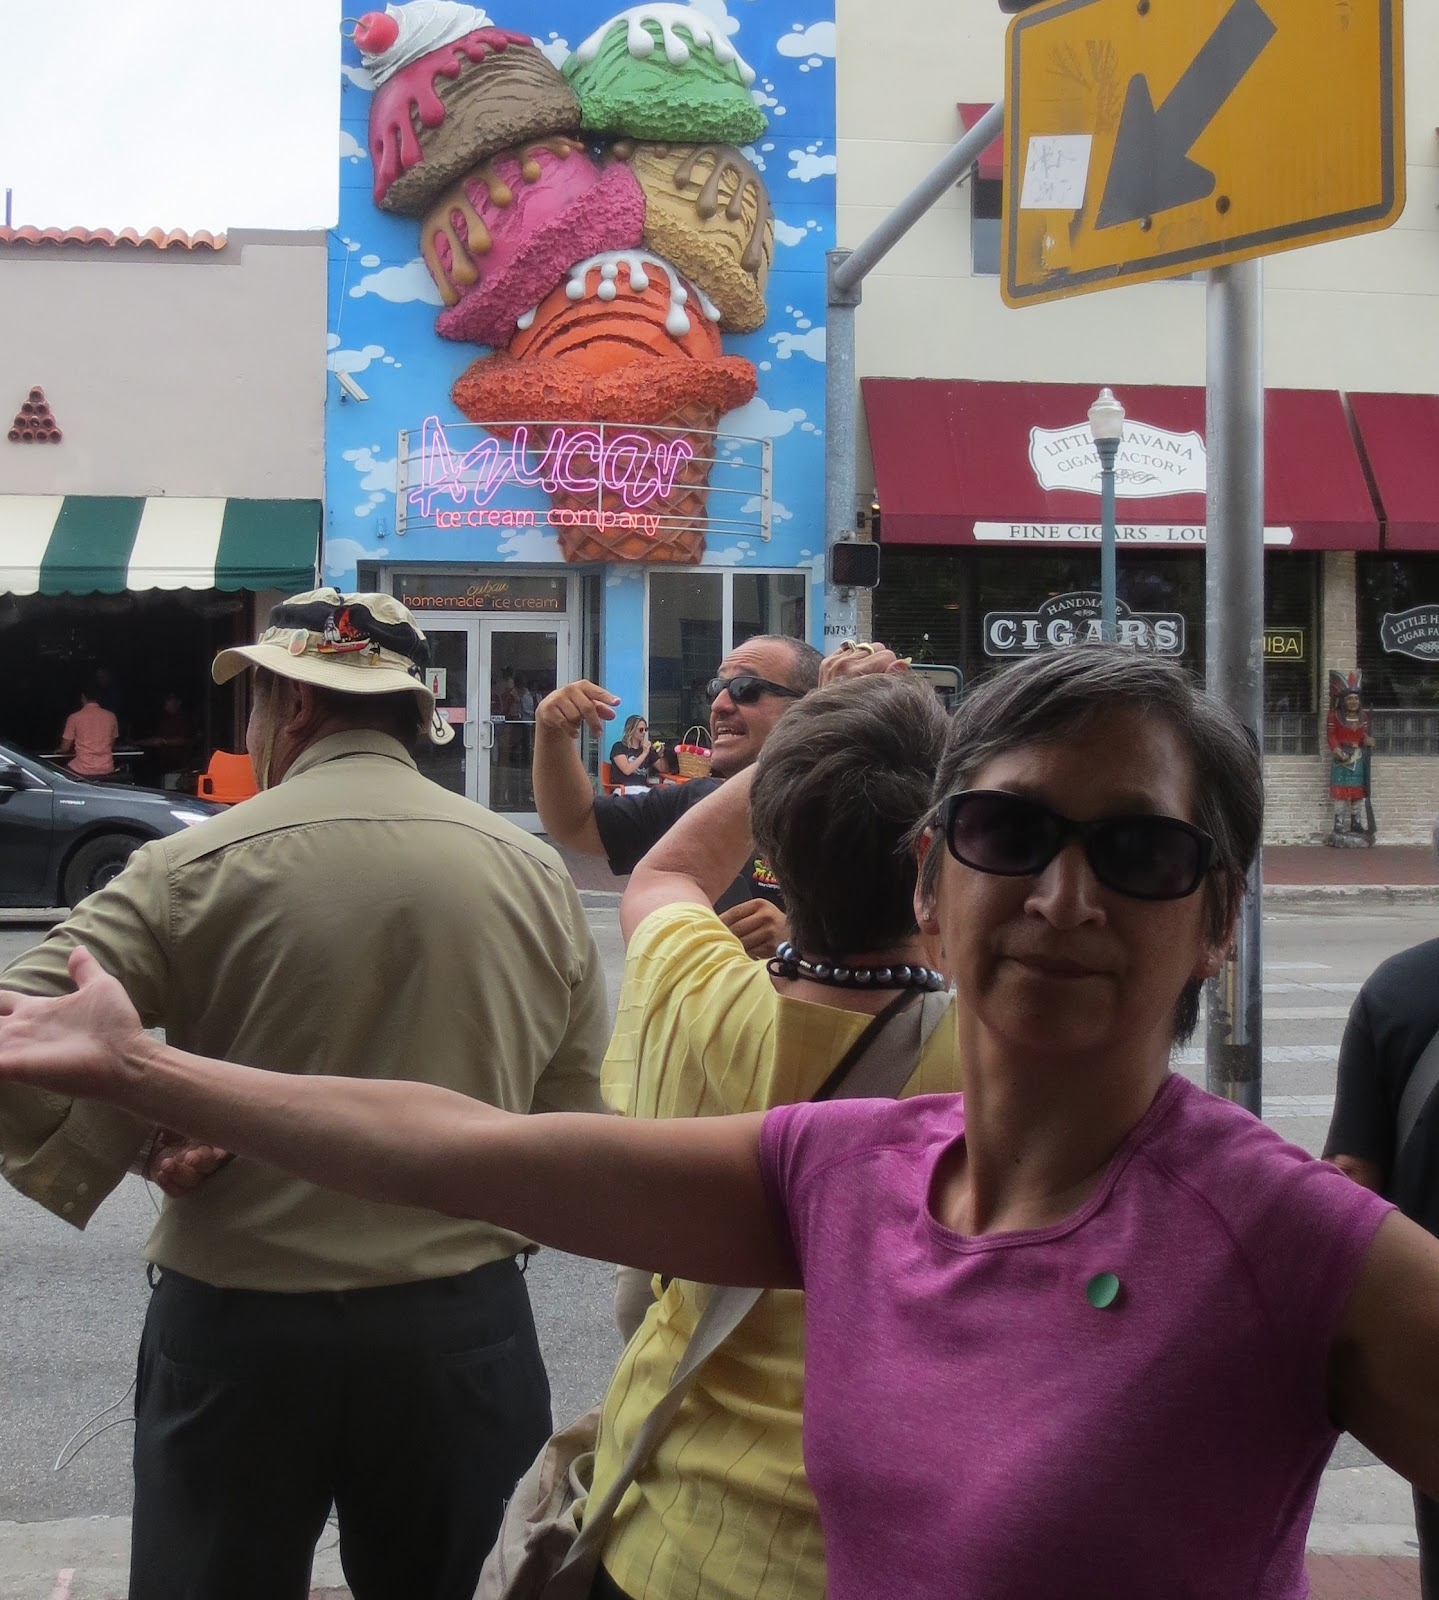 TOCTooler Pat Lim.  Street scene, before crossing street: arms spread, sunglasses on, smiling as she points to an exceptionally large ice cream shop sign across the street